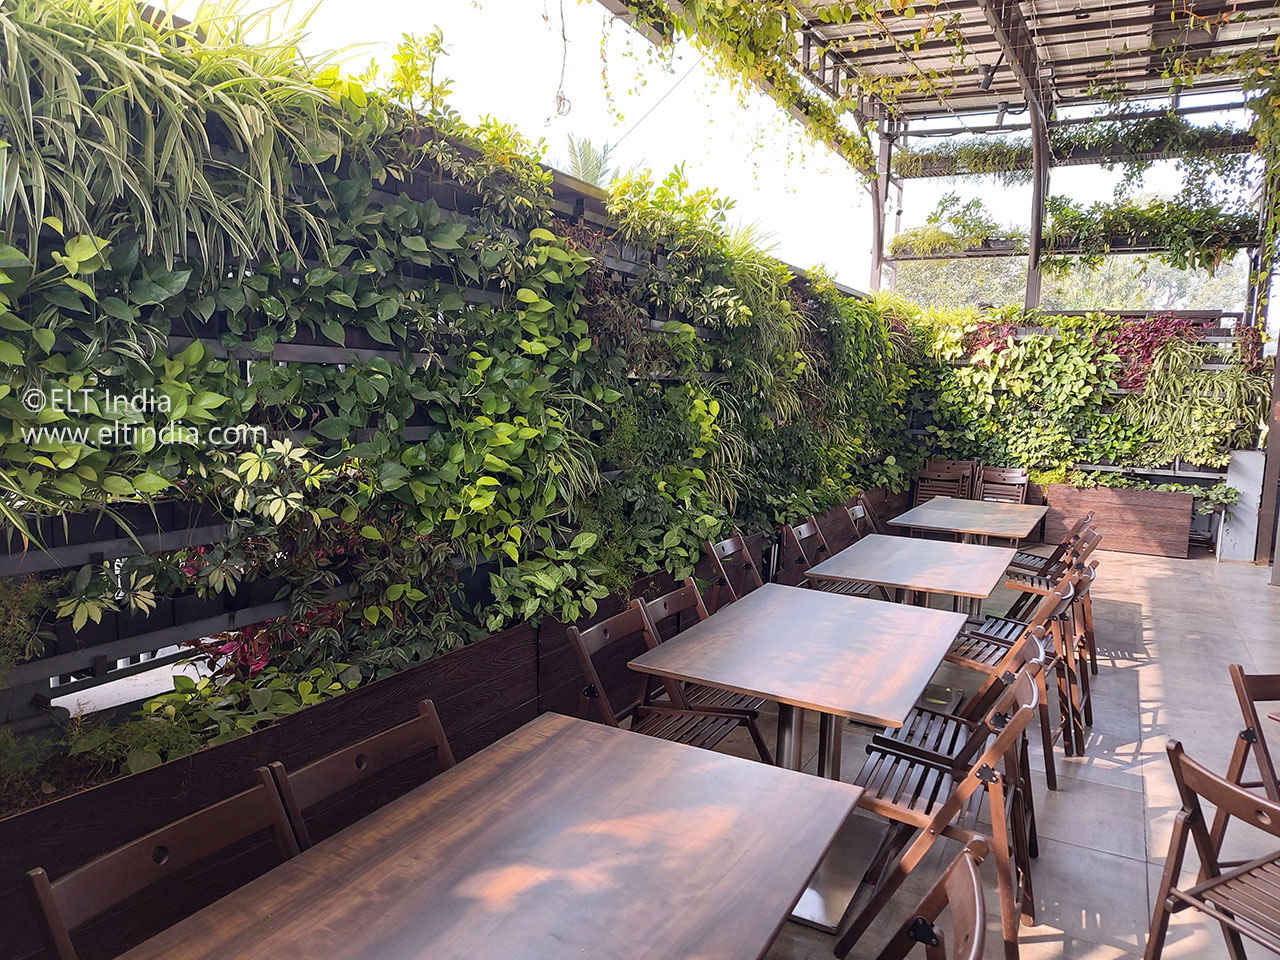 Green Wall System Case Study